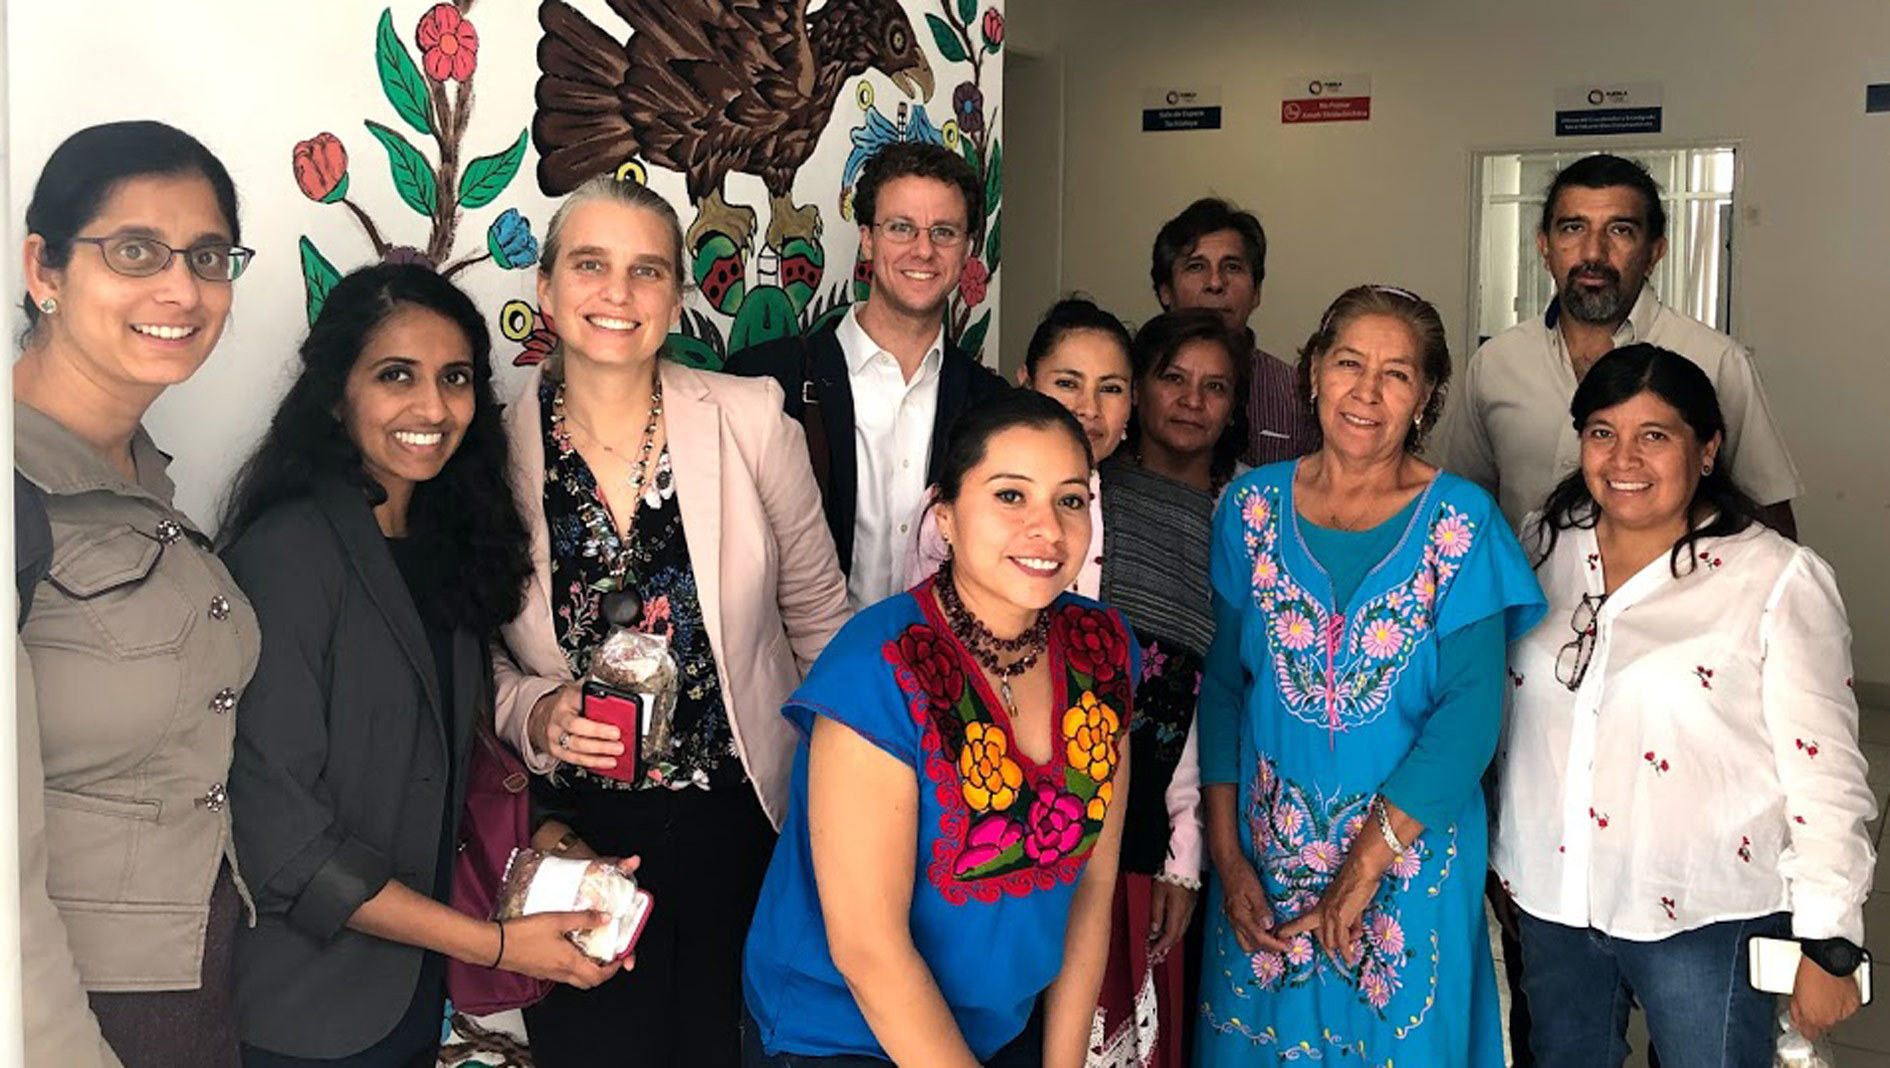 Division of Global Health students working in Mexico